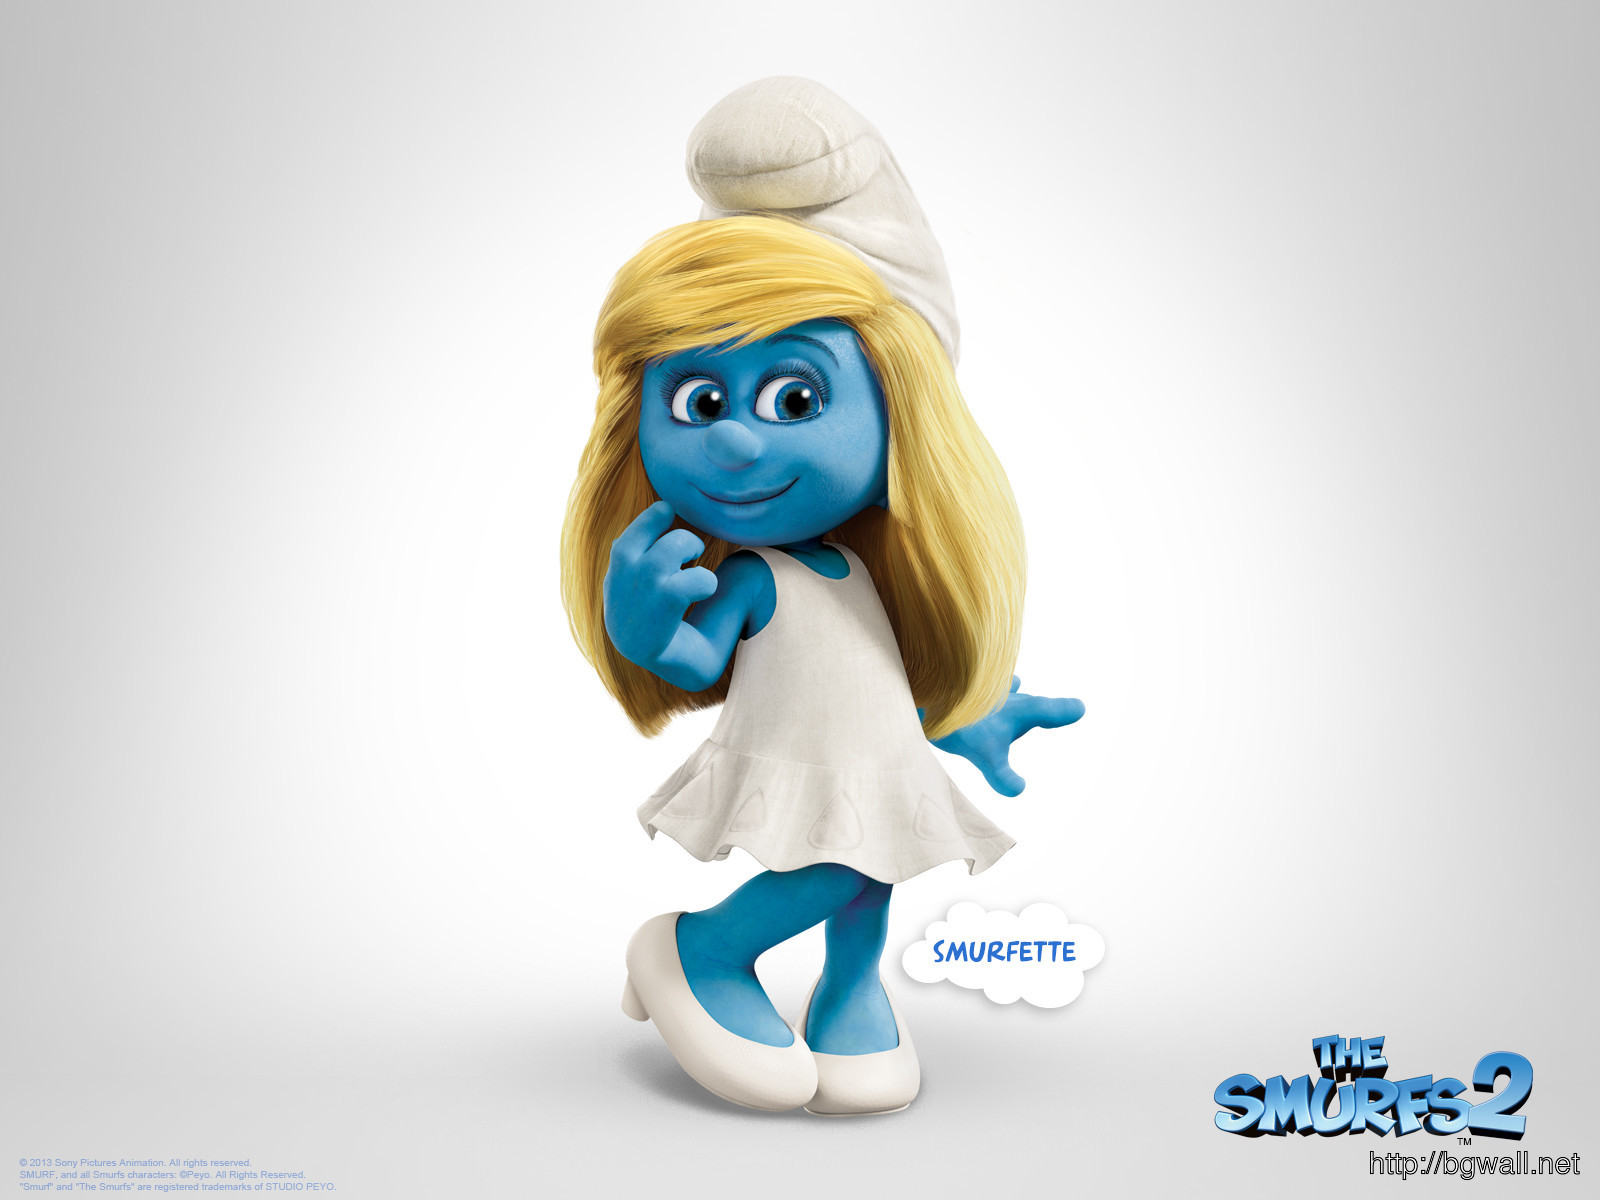 Katy Perry Smurfette In The Smurfs 2 Wallpaper Full Size